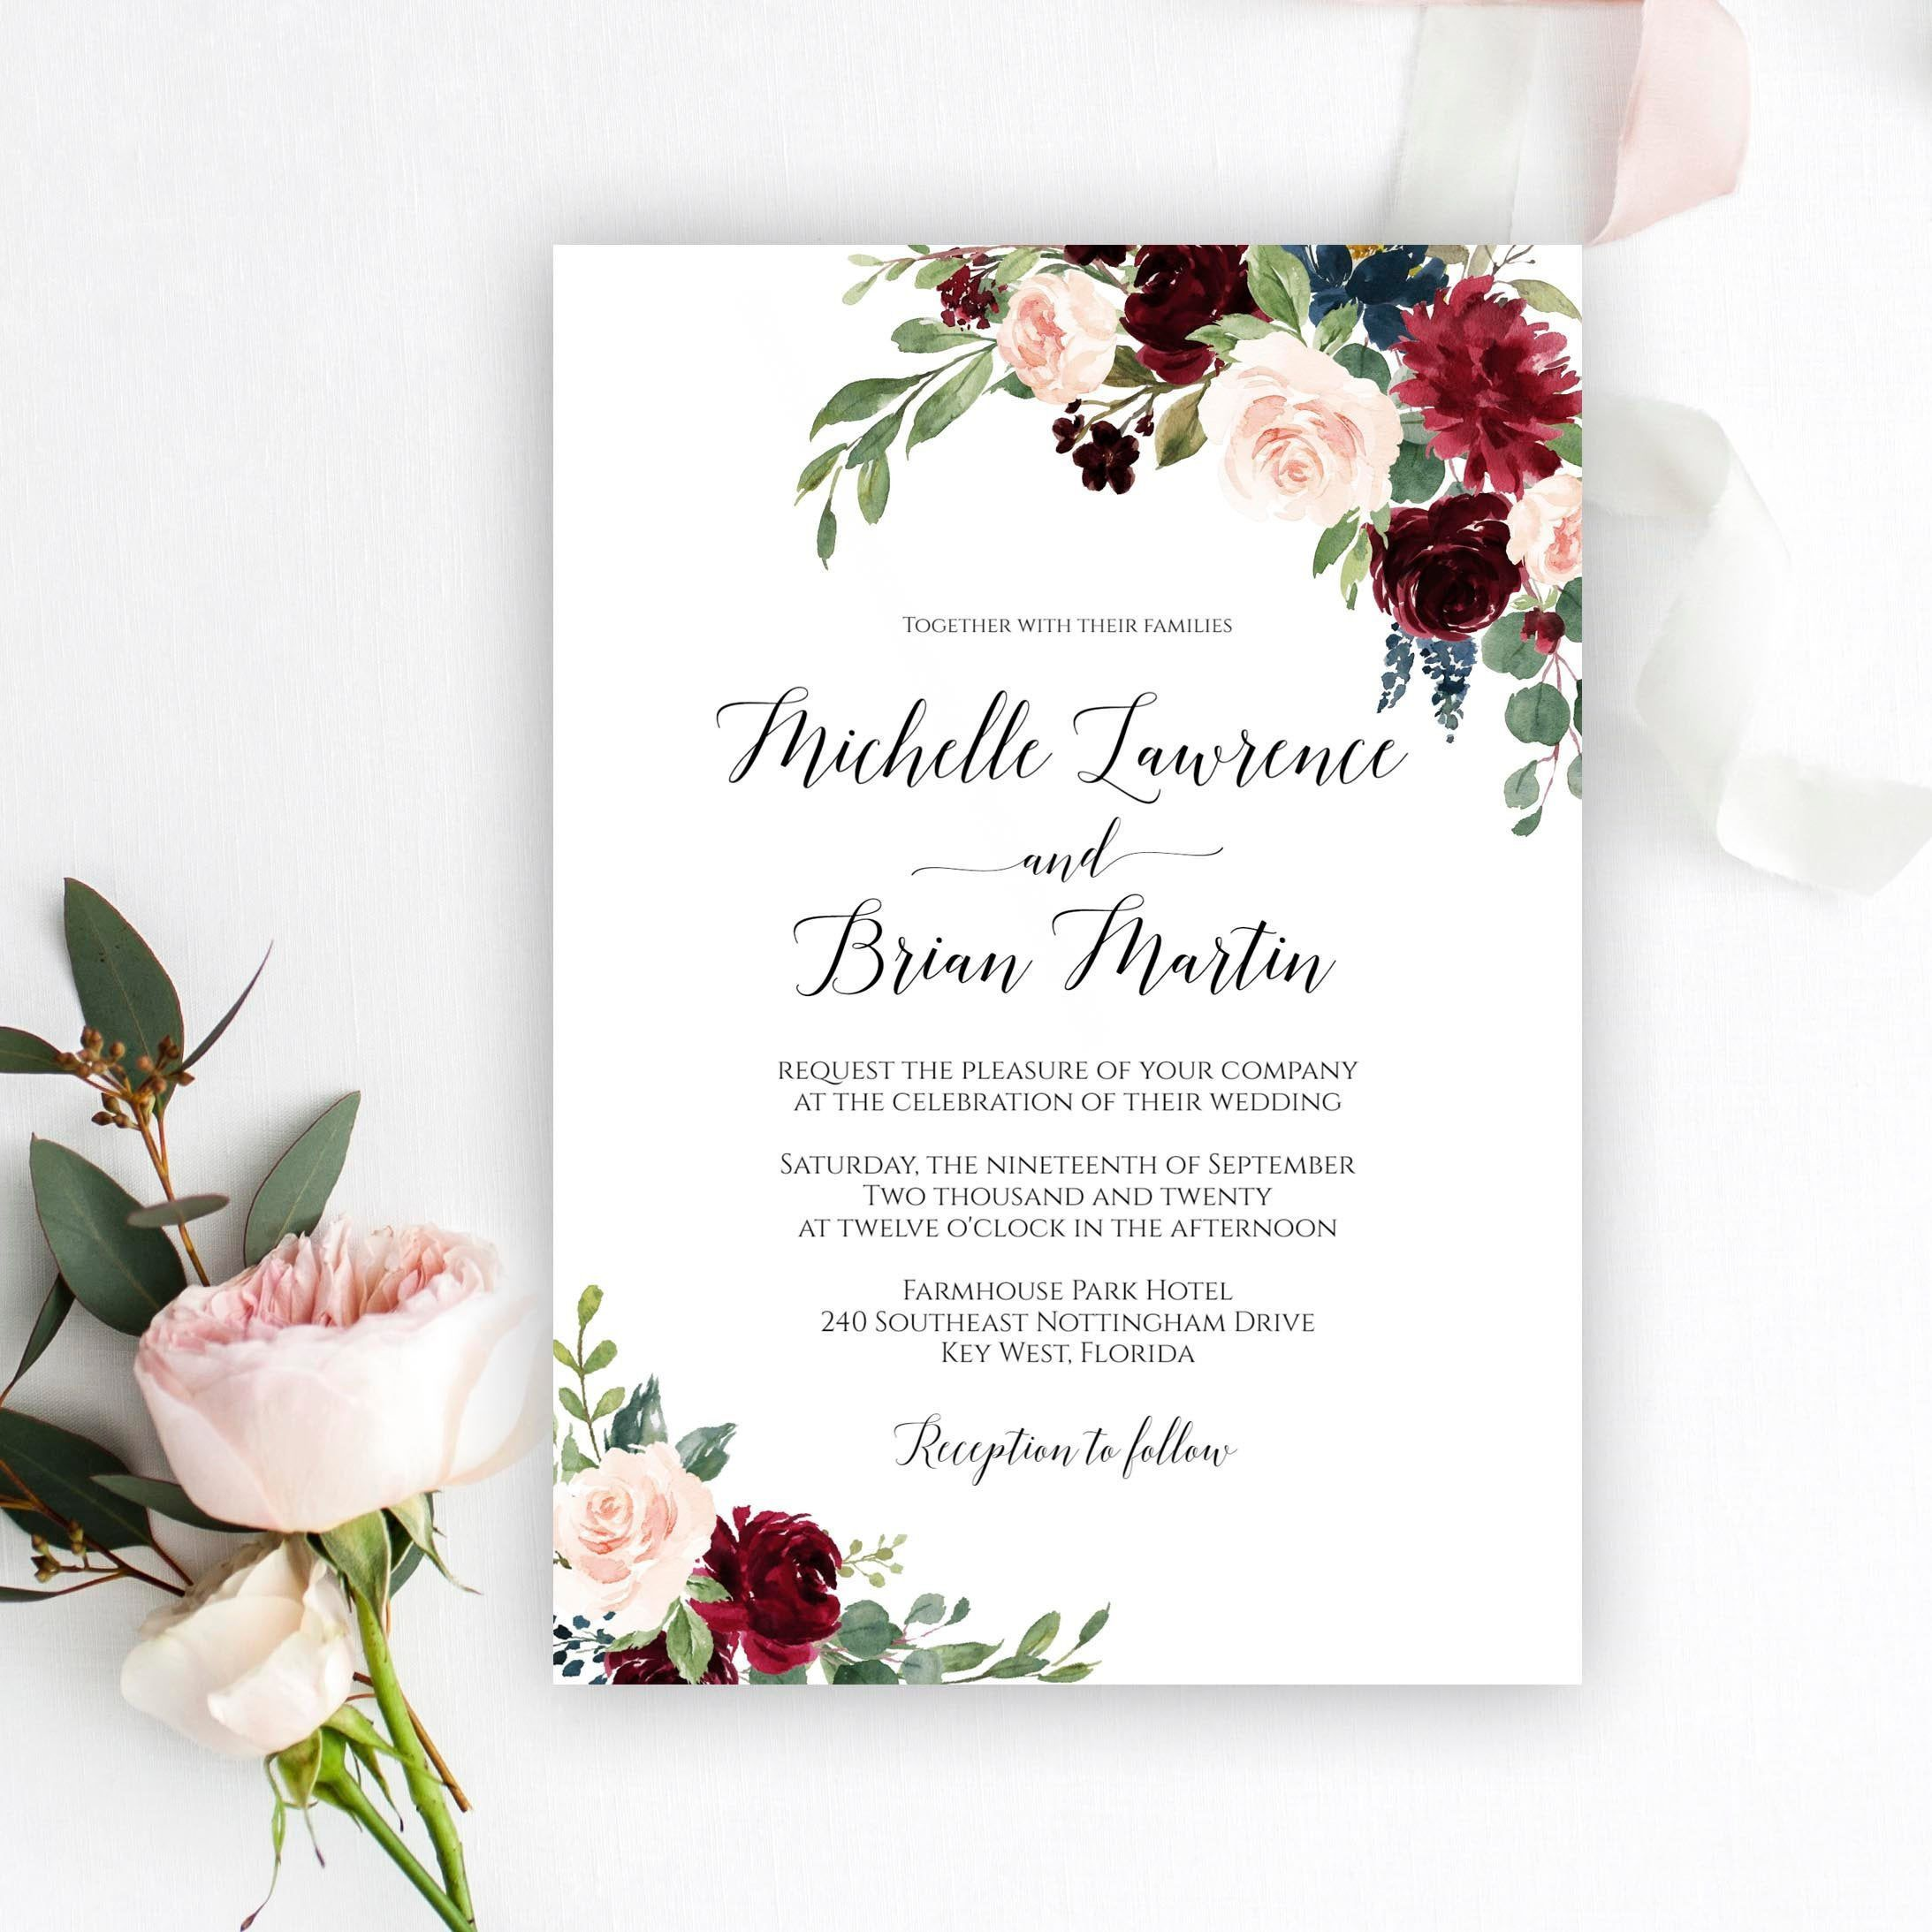 007 Wonderful Free Download Marriage Invitation Template Idea  Card Design Psd After EffectFull